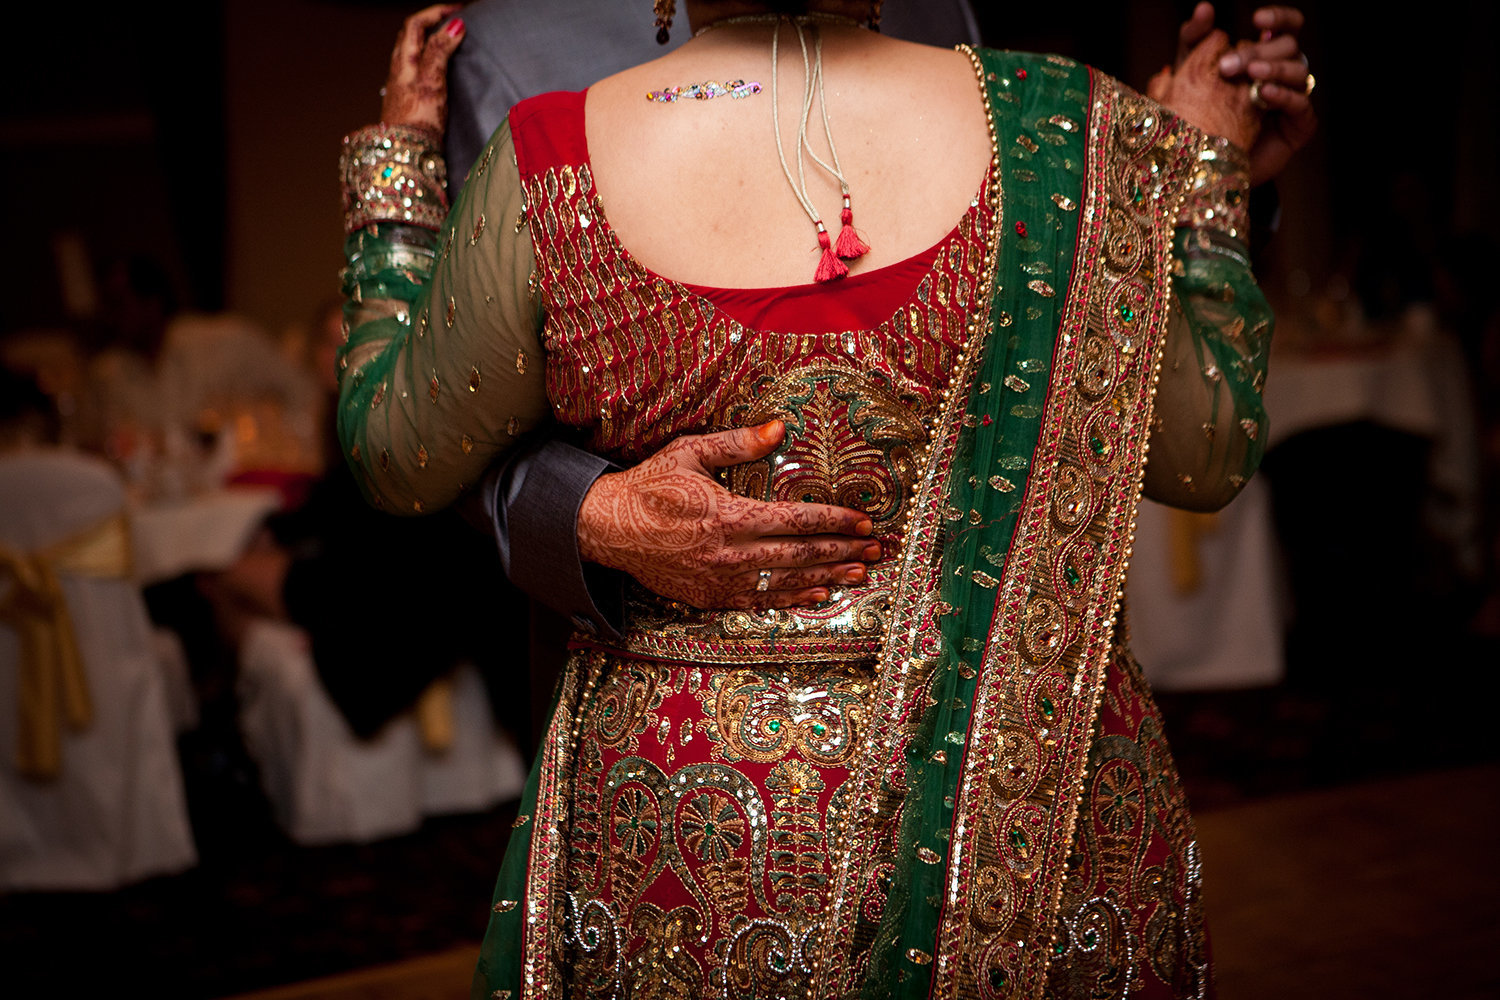 Romantic closeup of bride's sari and grooms hand during their first dance